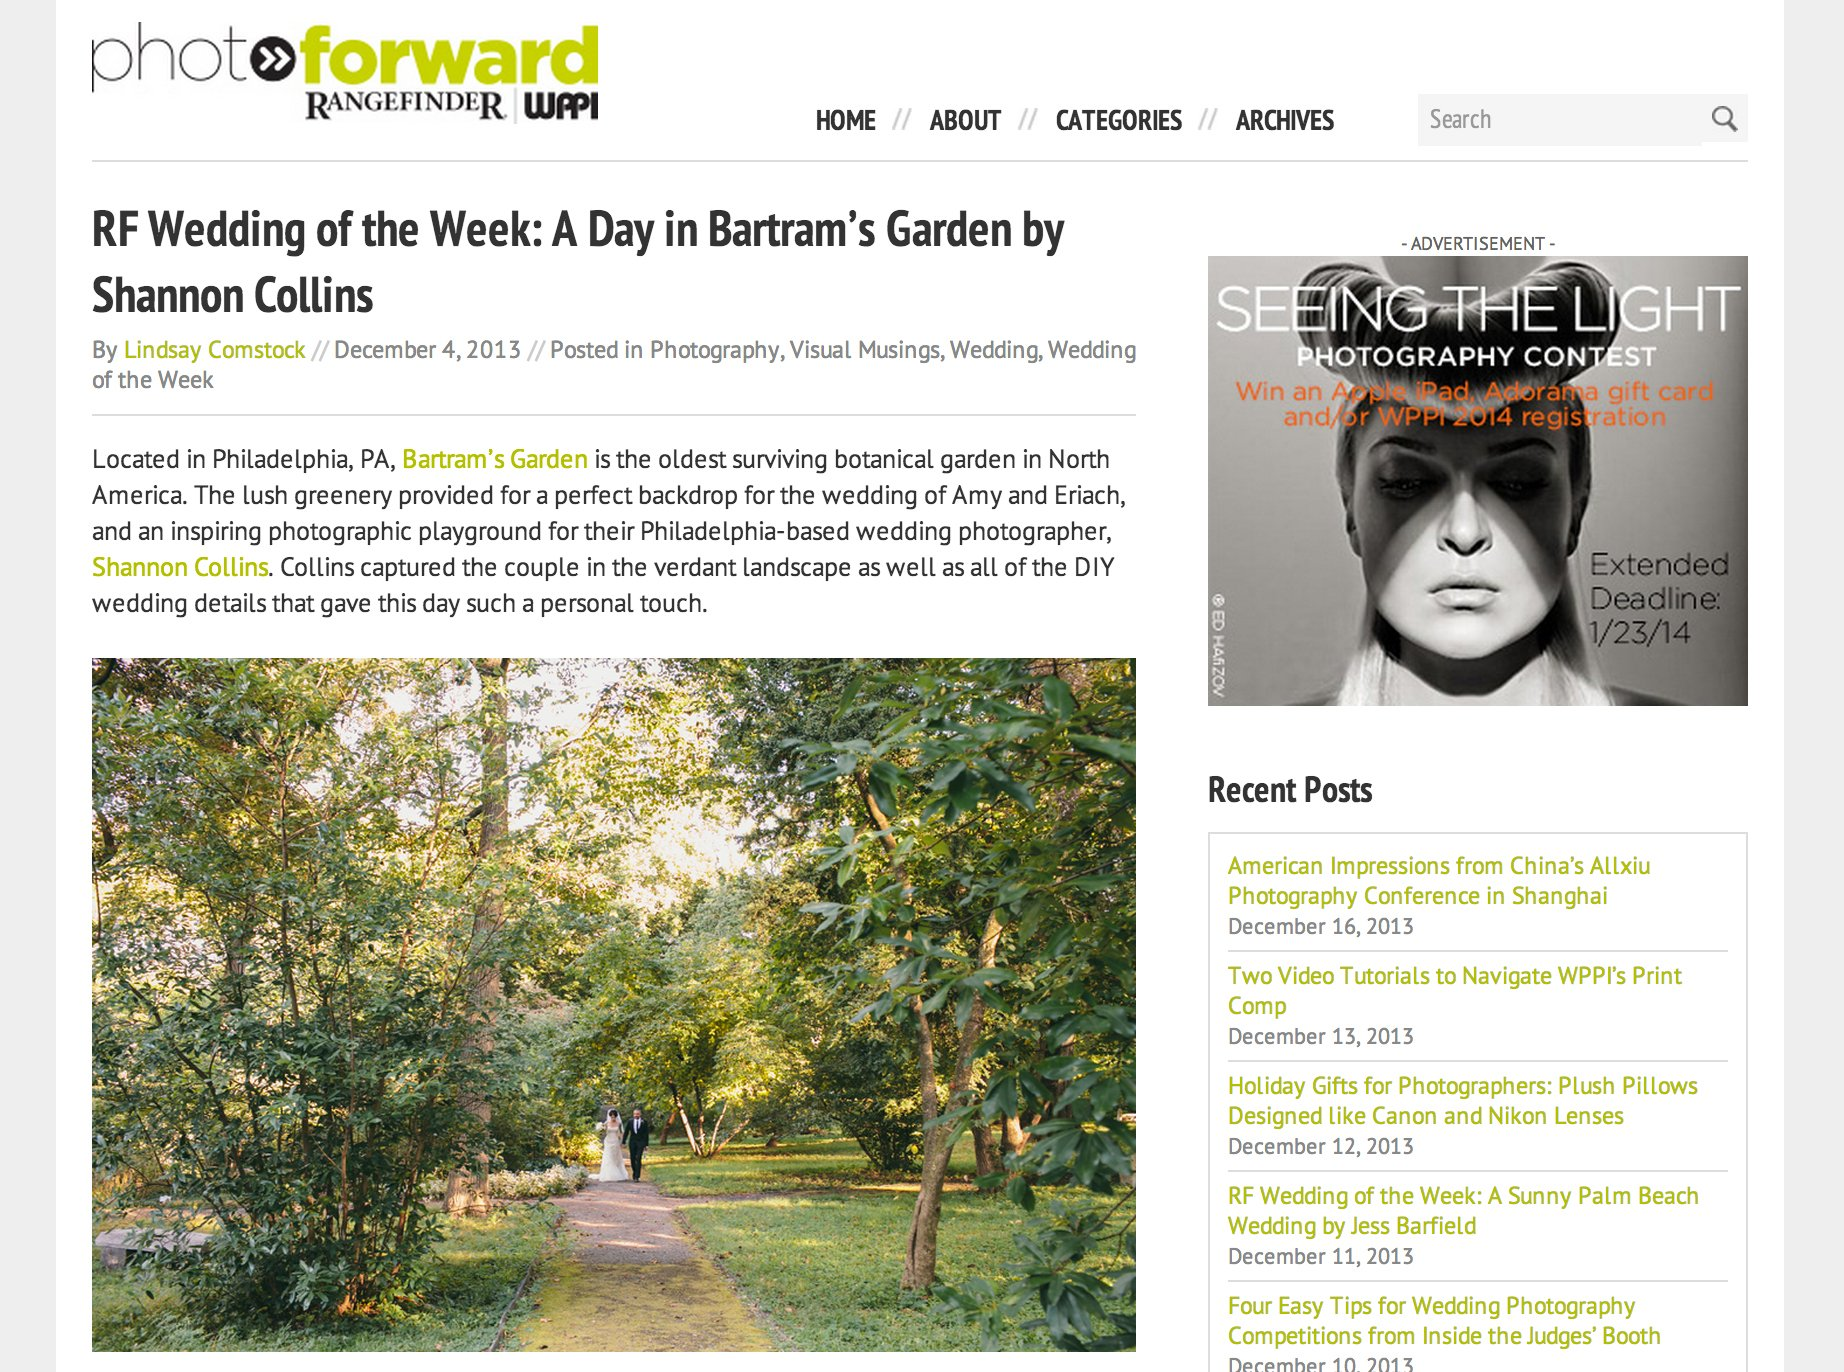 Rangefinder Magazine, wedding of the week